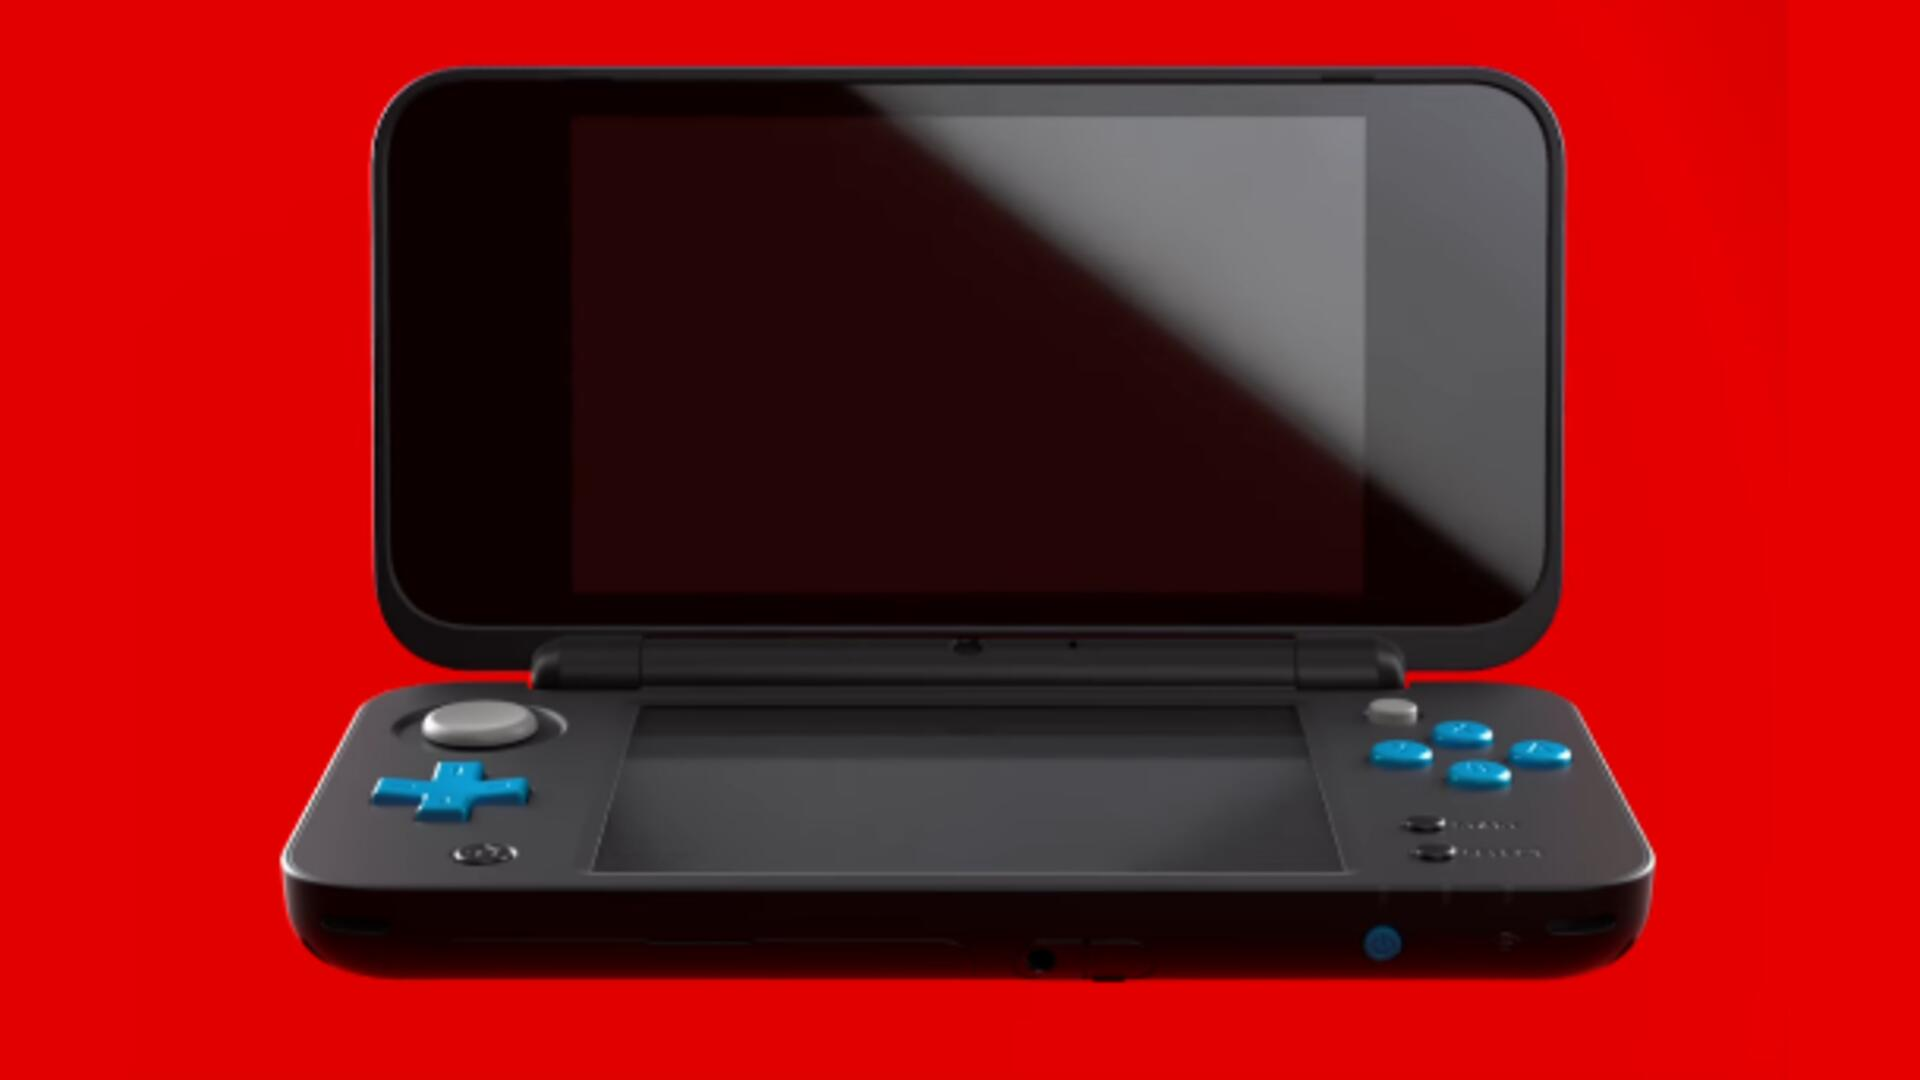 Nintendo New 2DS XL Review: The 3DS Model You Should Own